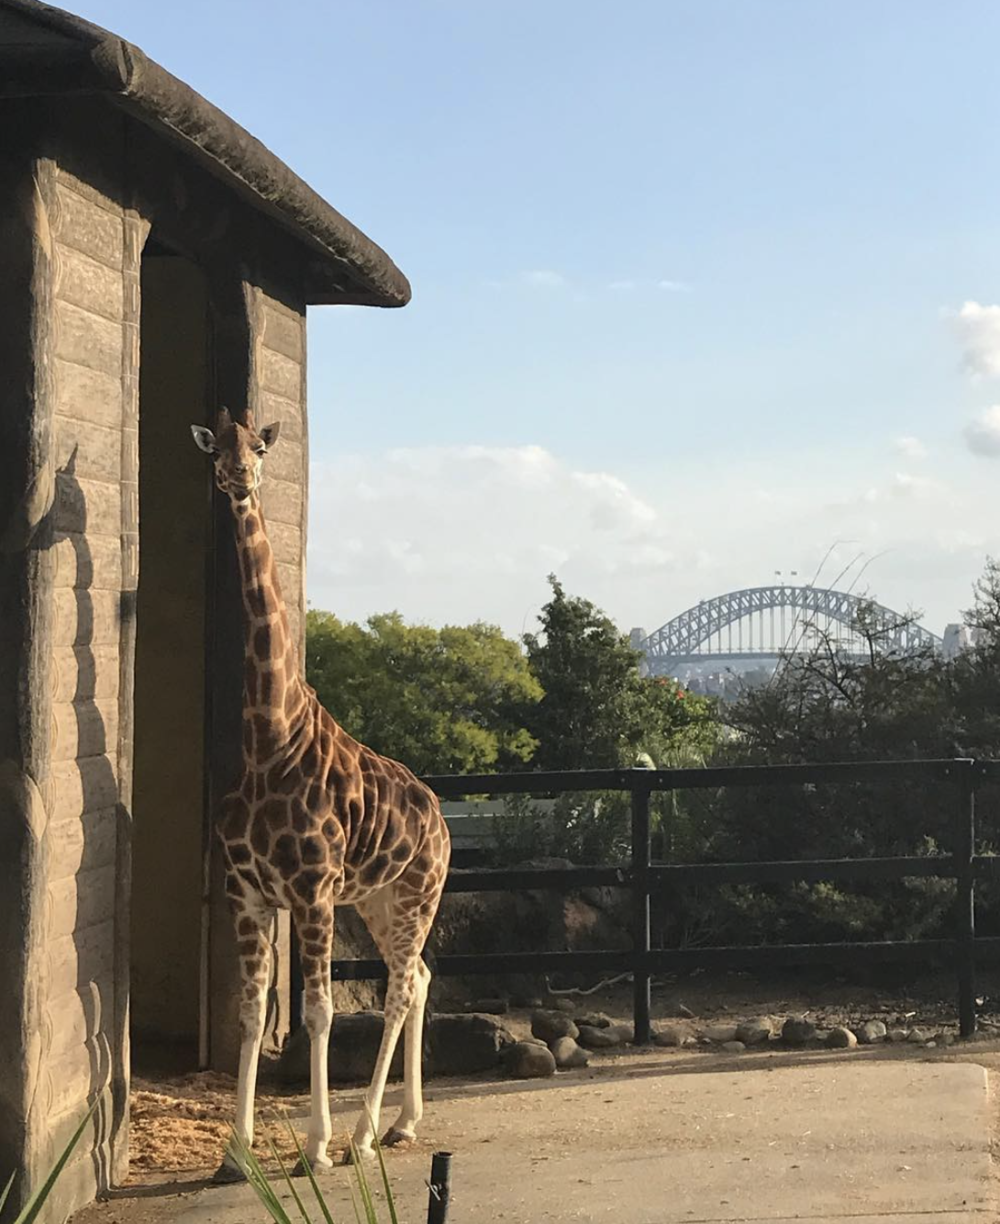 Zarafa, one of Taronga Zoo's resident giraffes